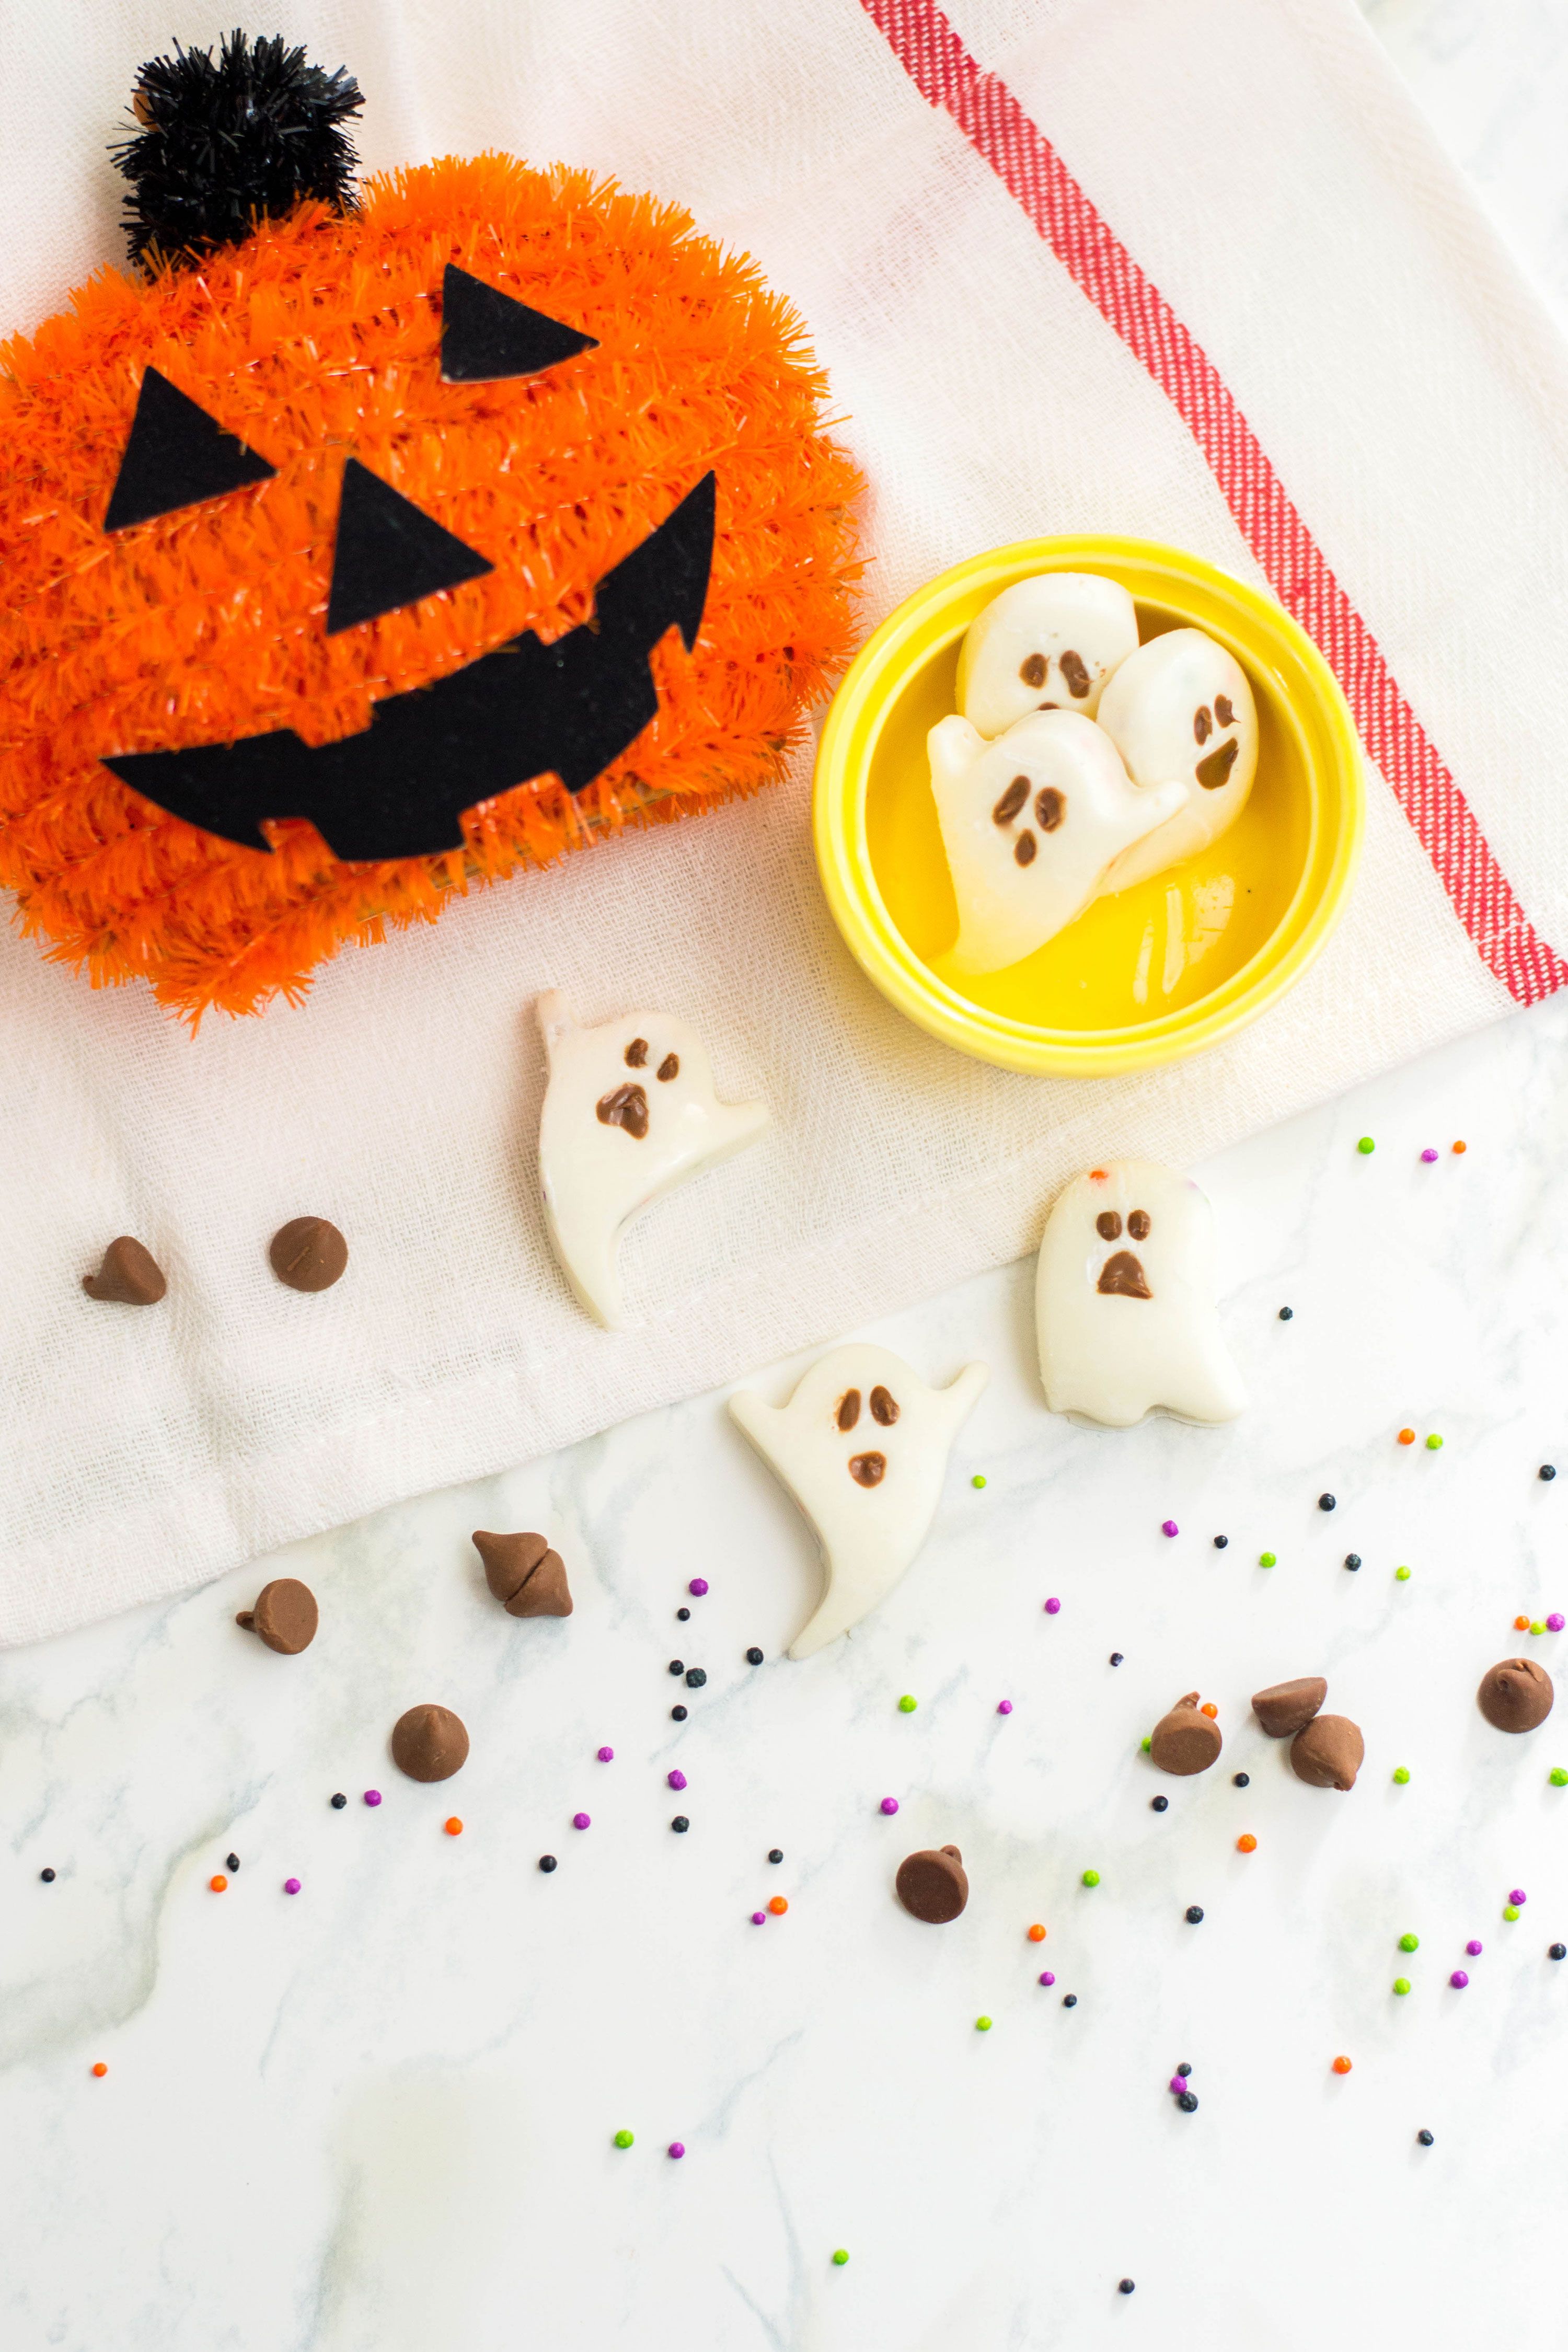 Boo! Are you excited for Halloween? Add some extra sweetness to your Halloween dessert offering by making these white chocolate ghosts! #halloweenbaking